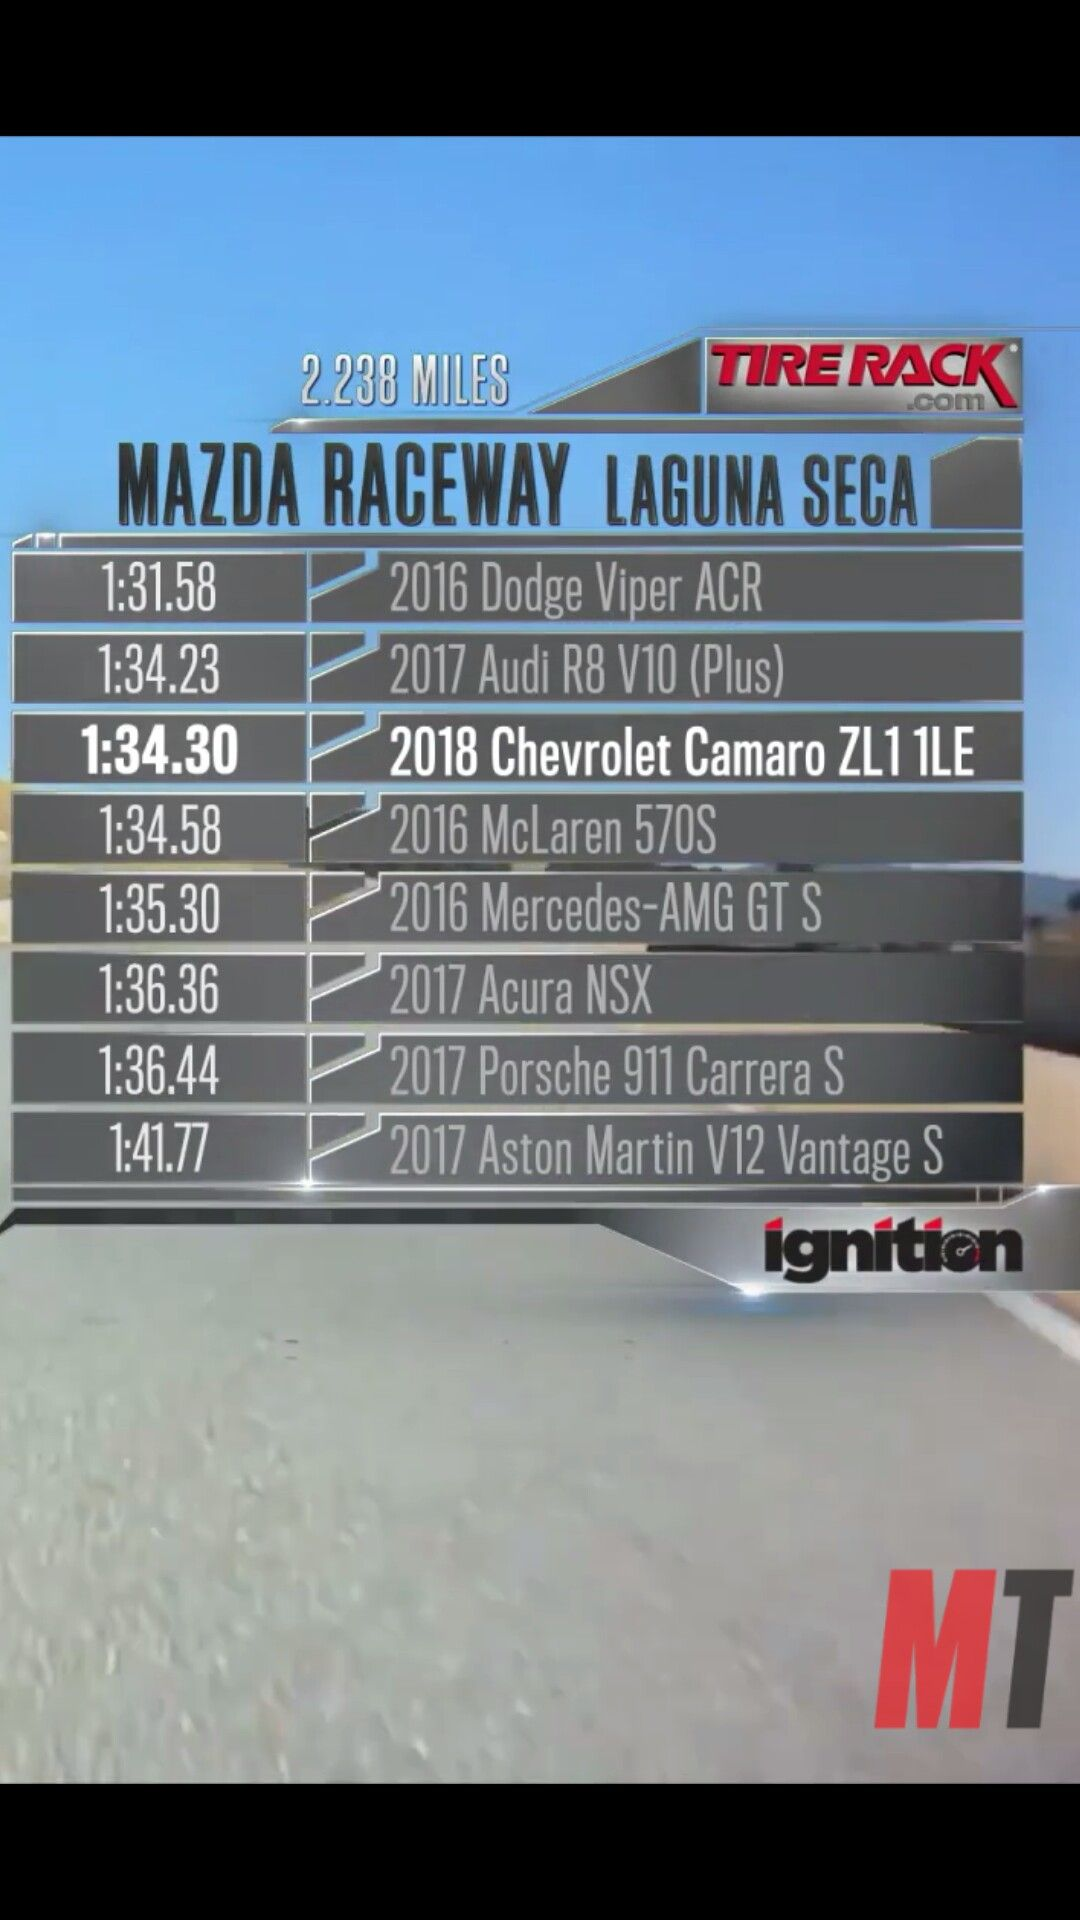 Camaro Zl Le Has The Third Fastest Lap Time Around Mazda Raceway Laguna Seca Just Check Out The Other Elite Rides That It Is In The Top  With